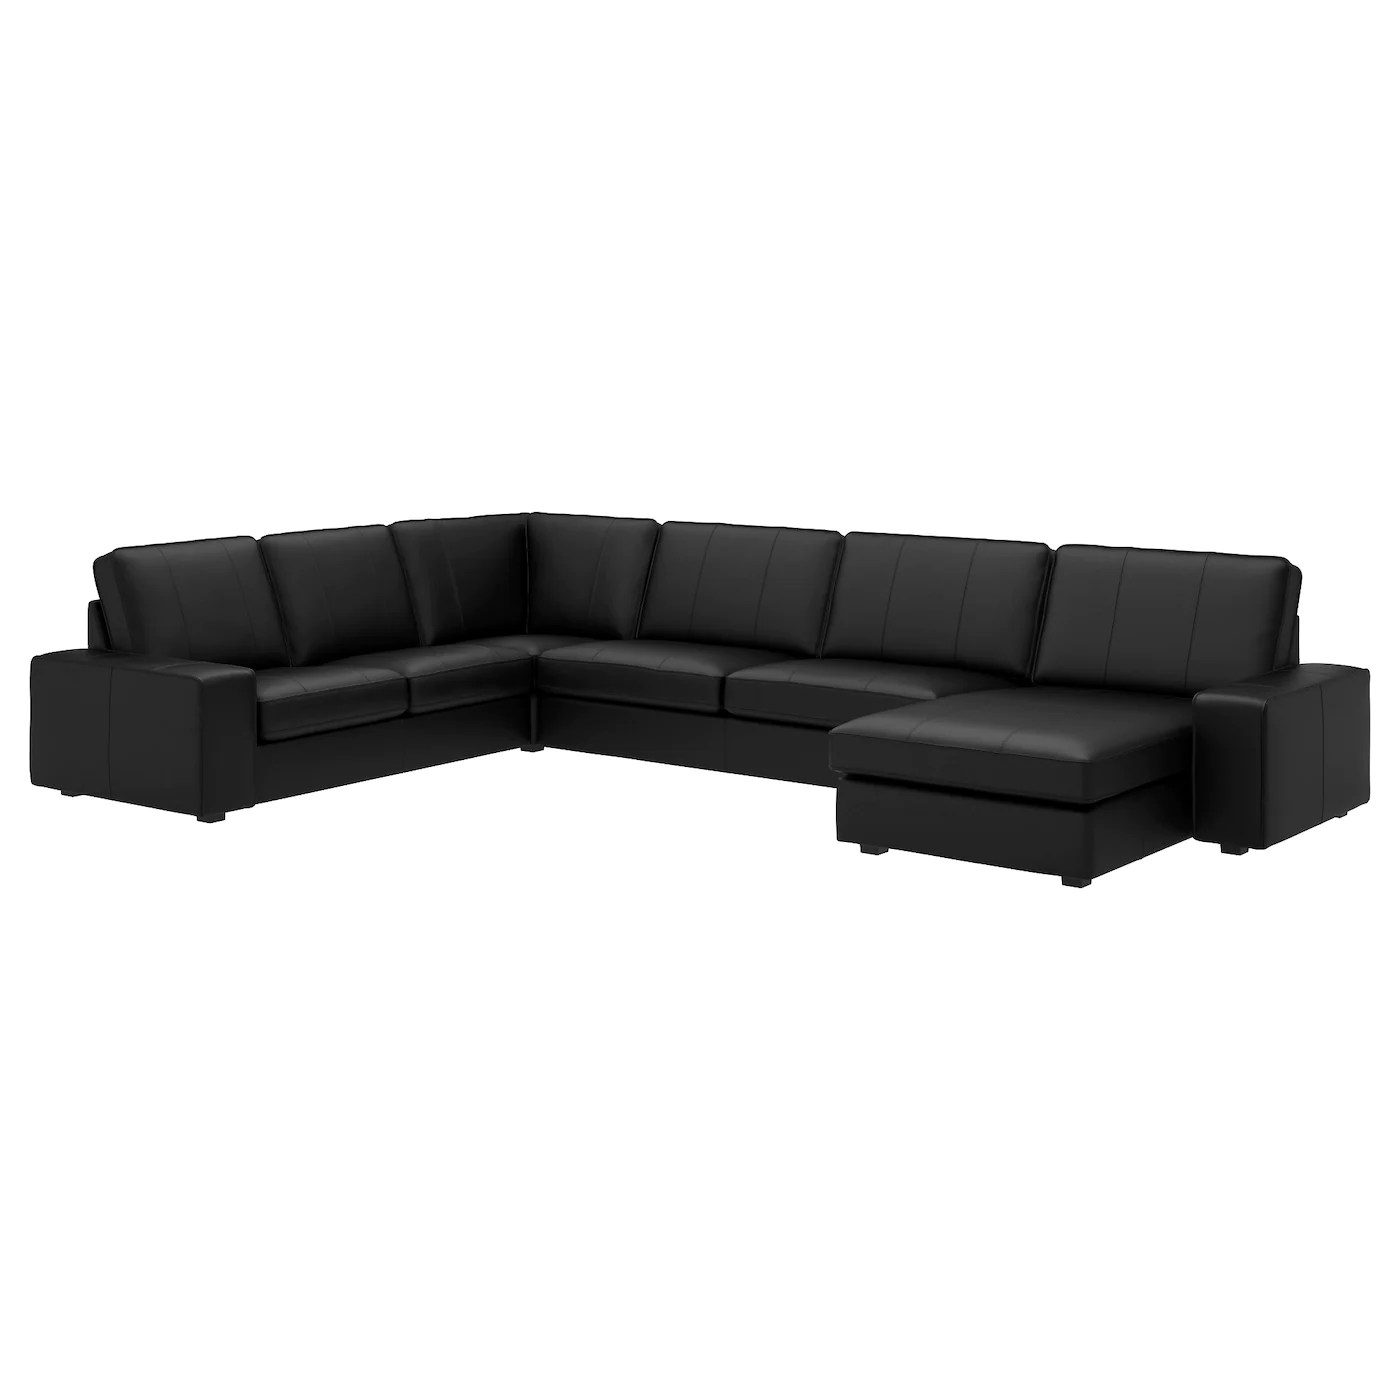 corner sofa bed chaise longue cheap sydney australia kivik 23 32 and grann bomstad